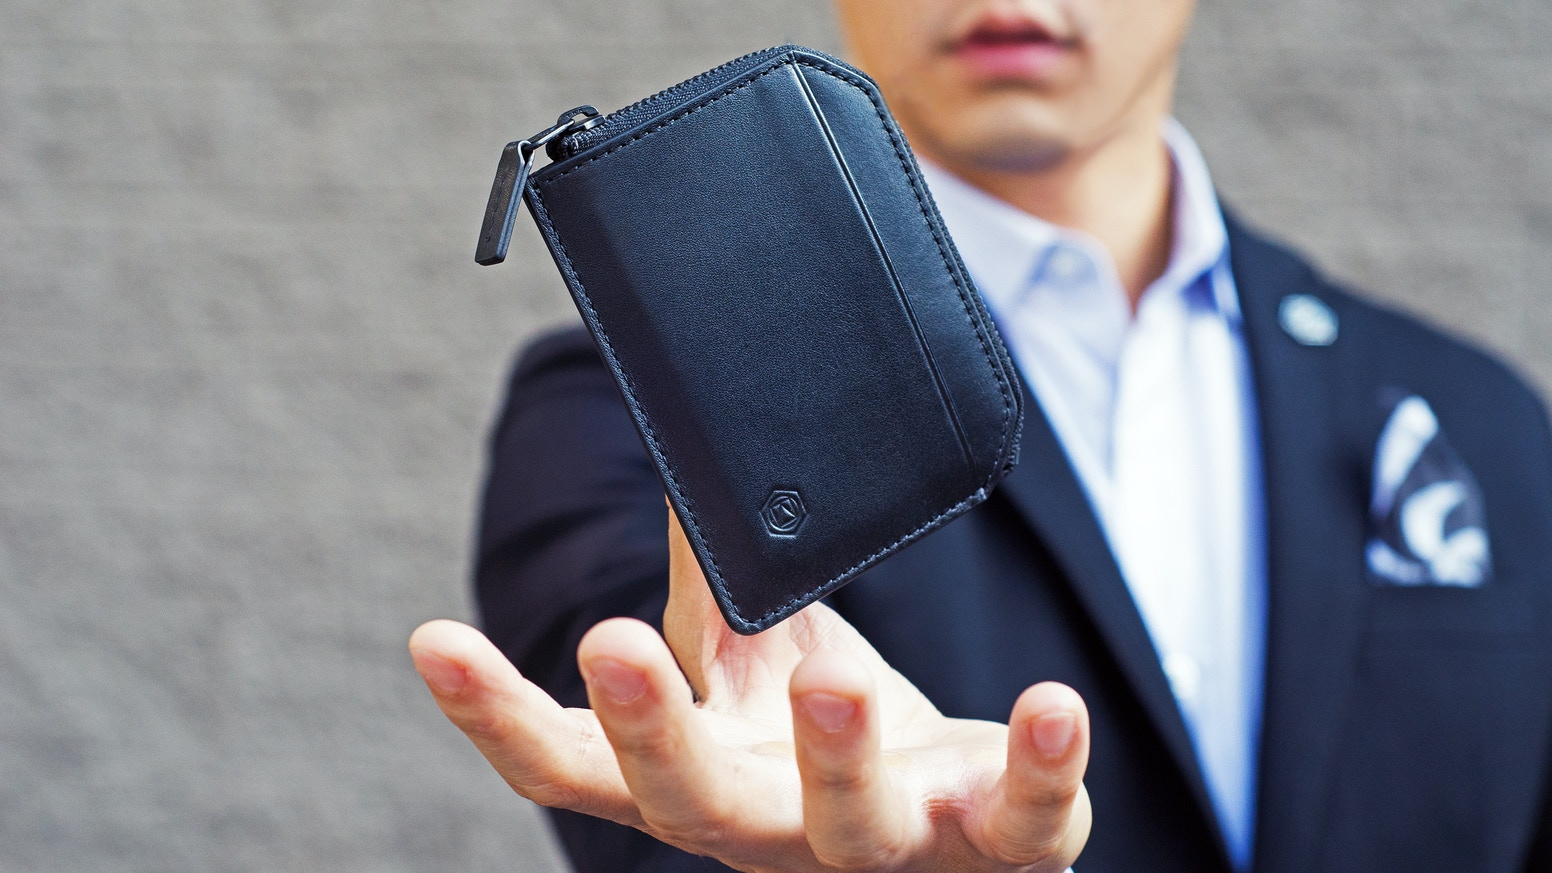 A sophisticated high-capacity wallet for those that need to carry a little more. Carry as much or as little as you need.